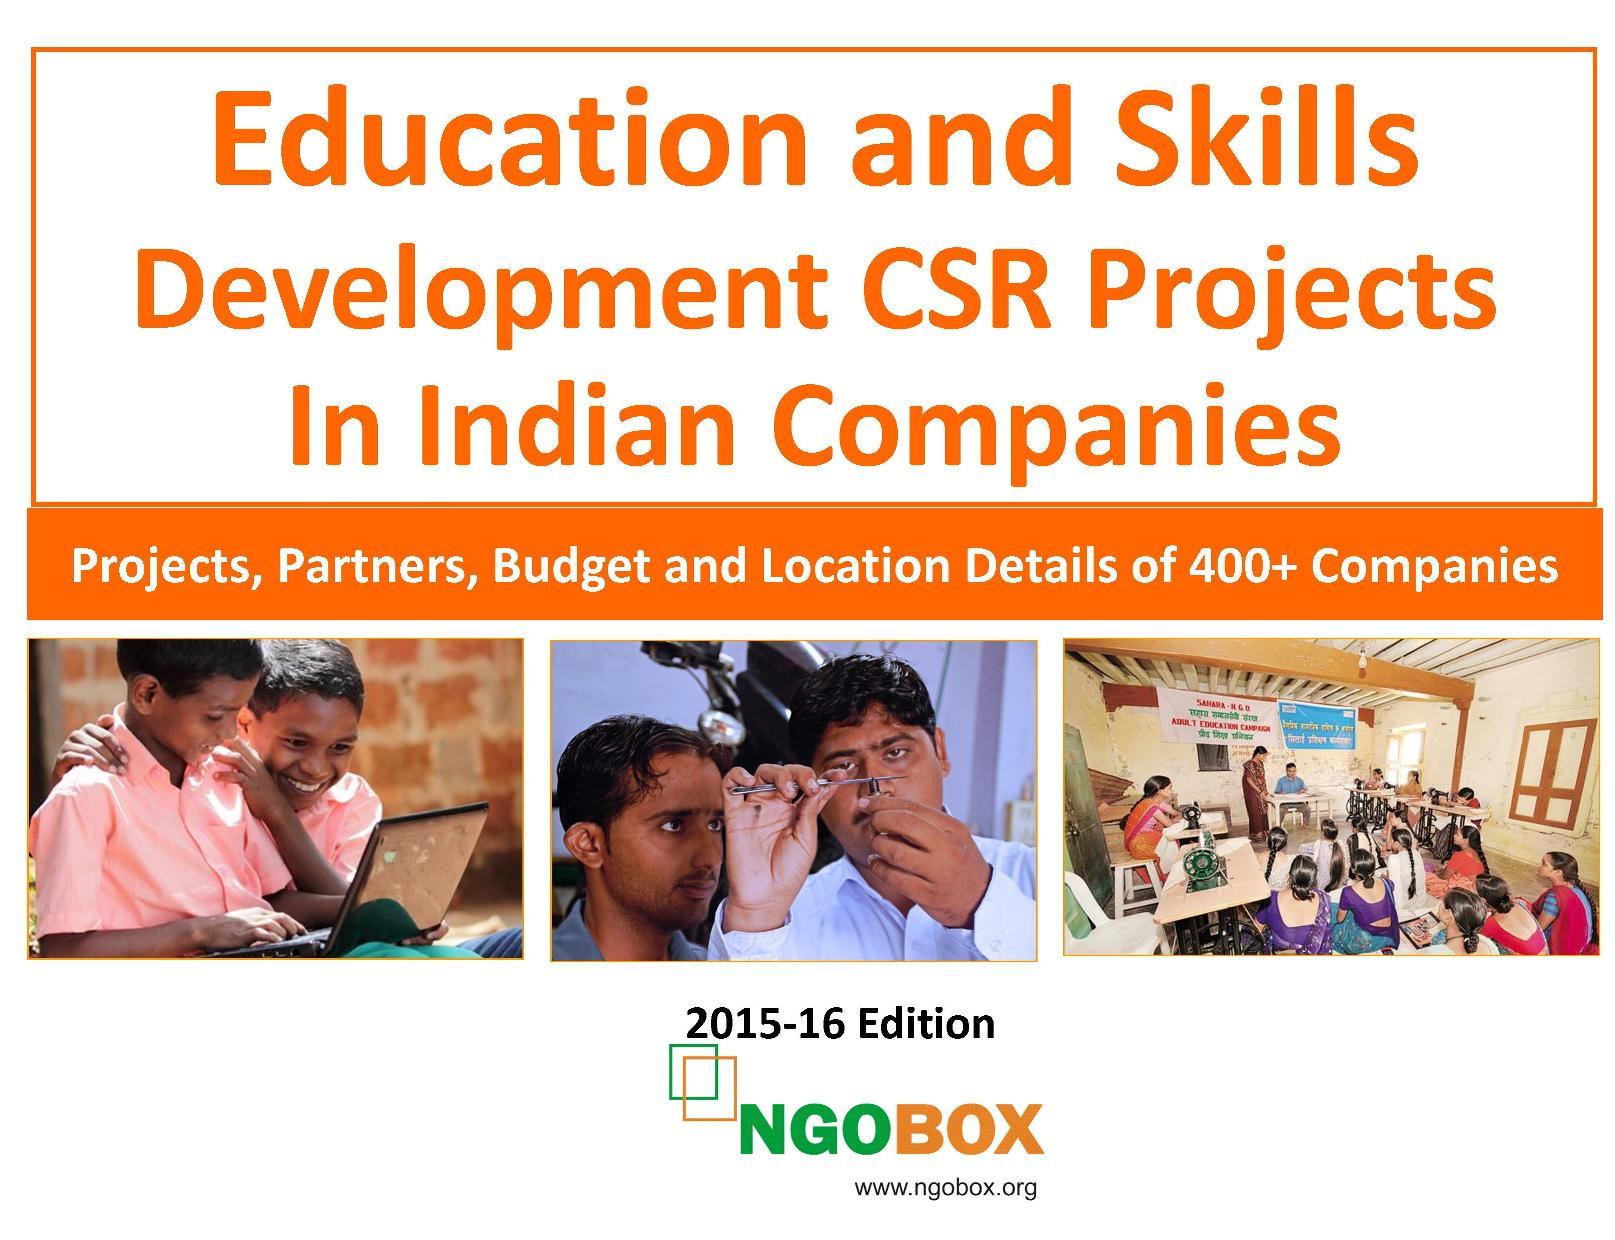 Education and Skills Development CSR Projects in Indian Companies